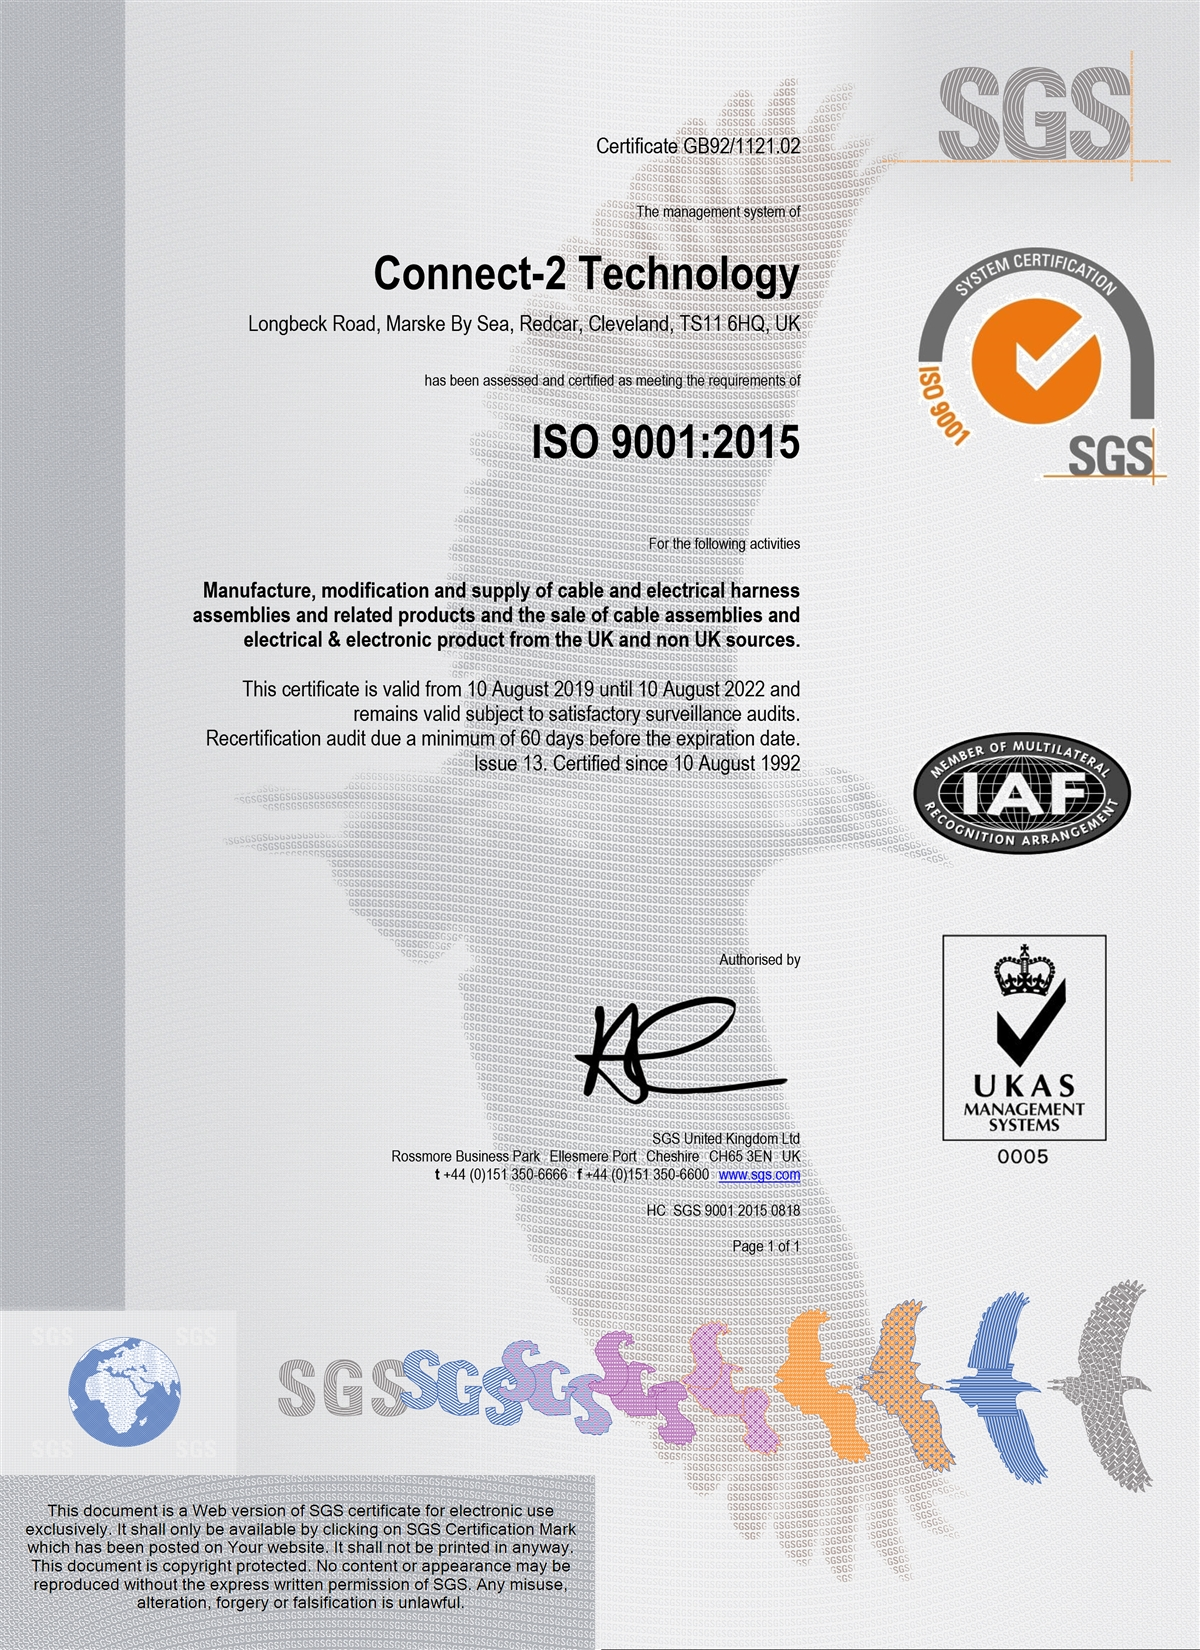 Connect-2 Technology ISO9001/2015 certificate